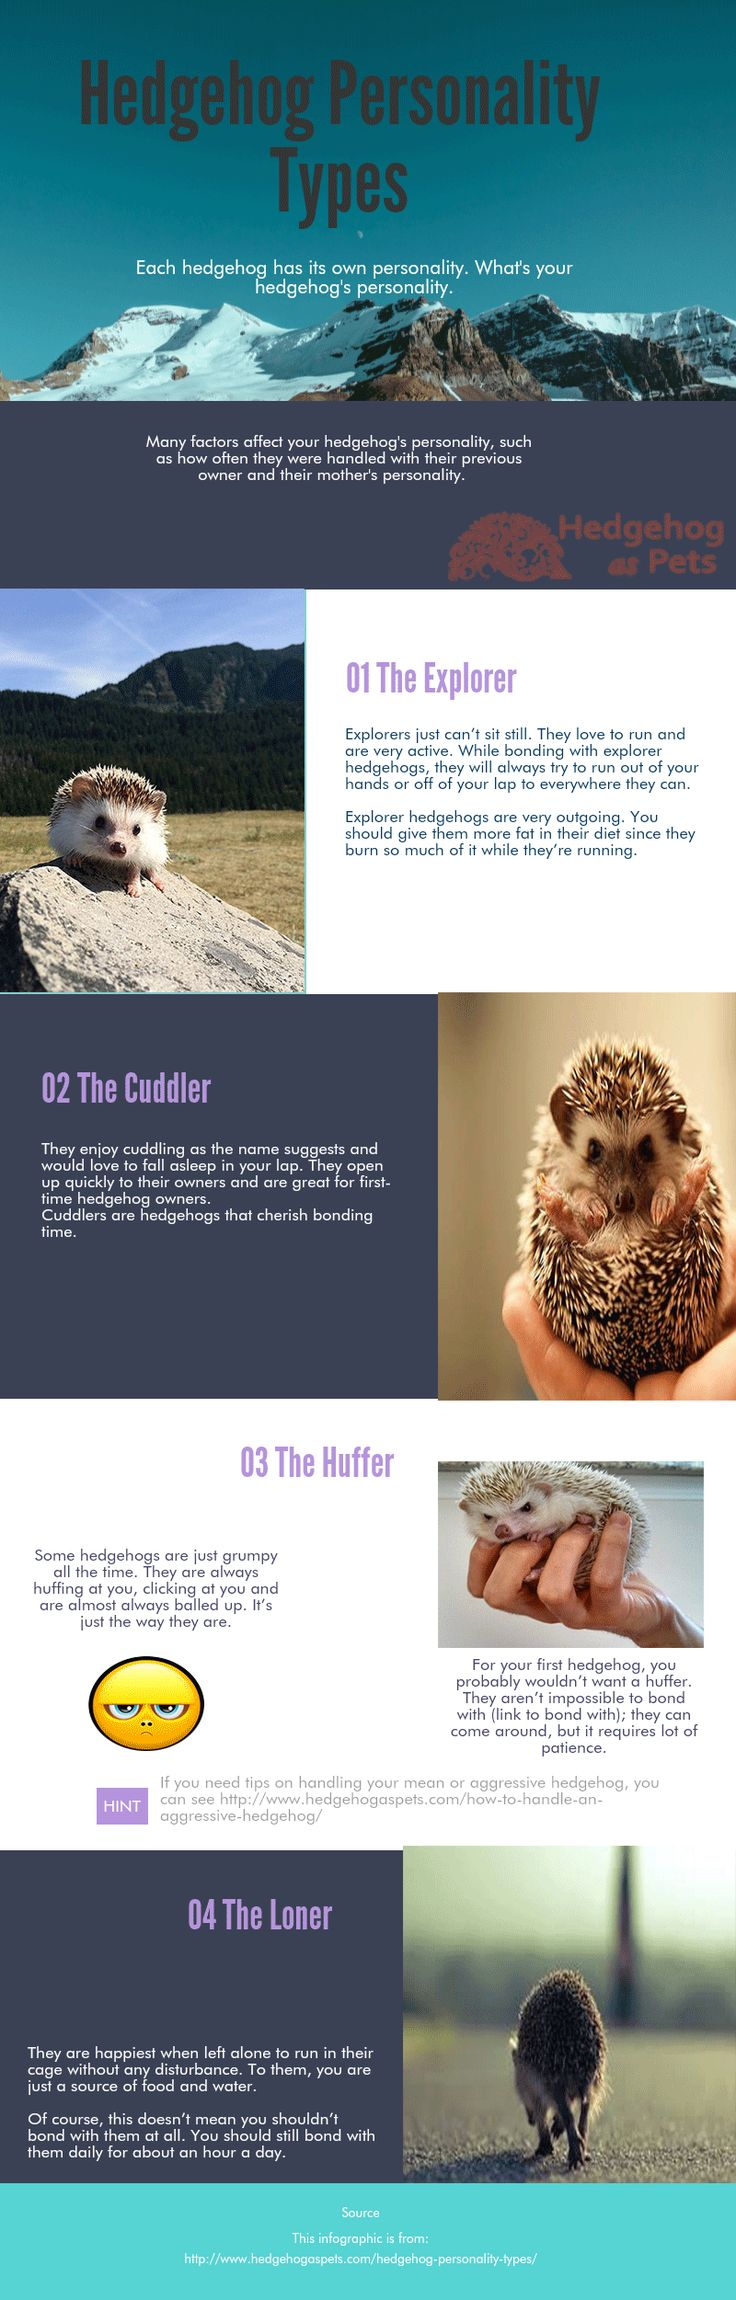 Hedgehog Personality Types